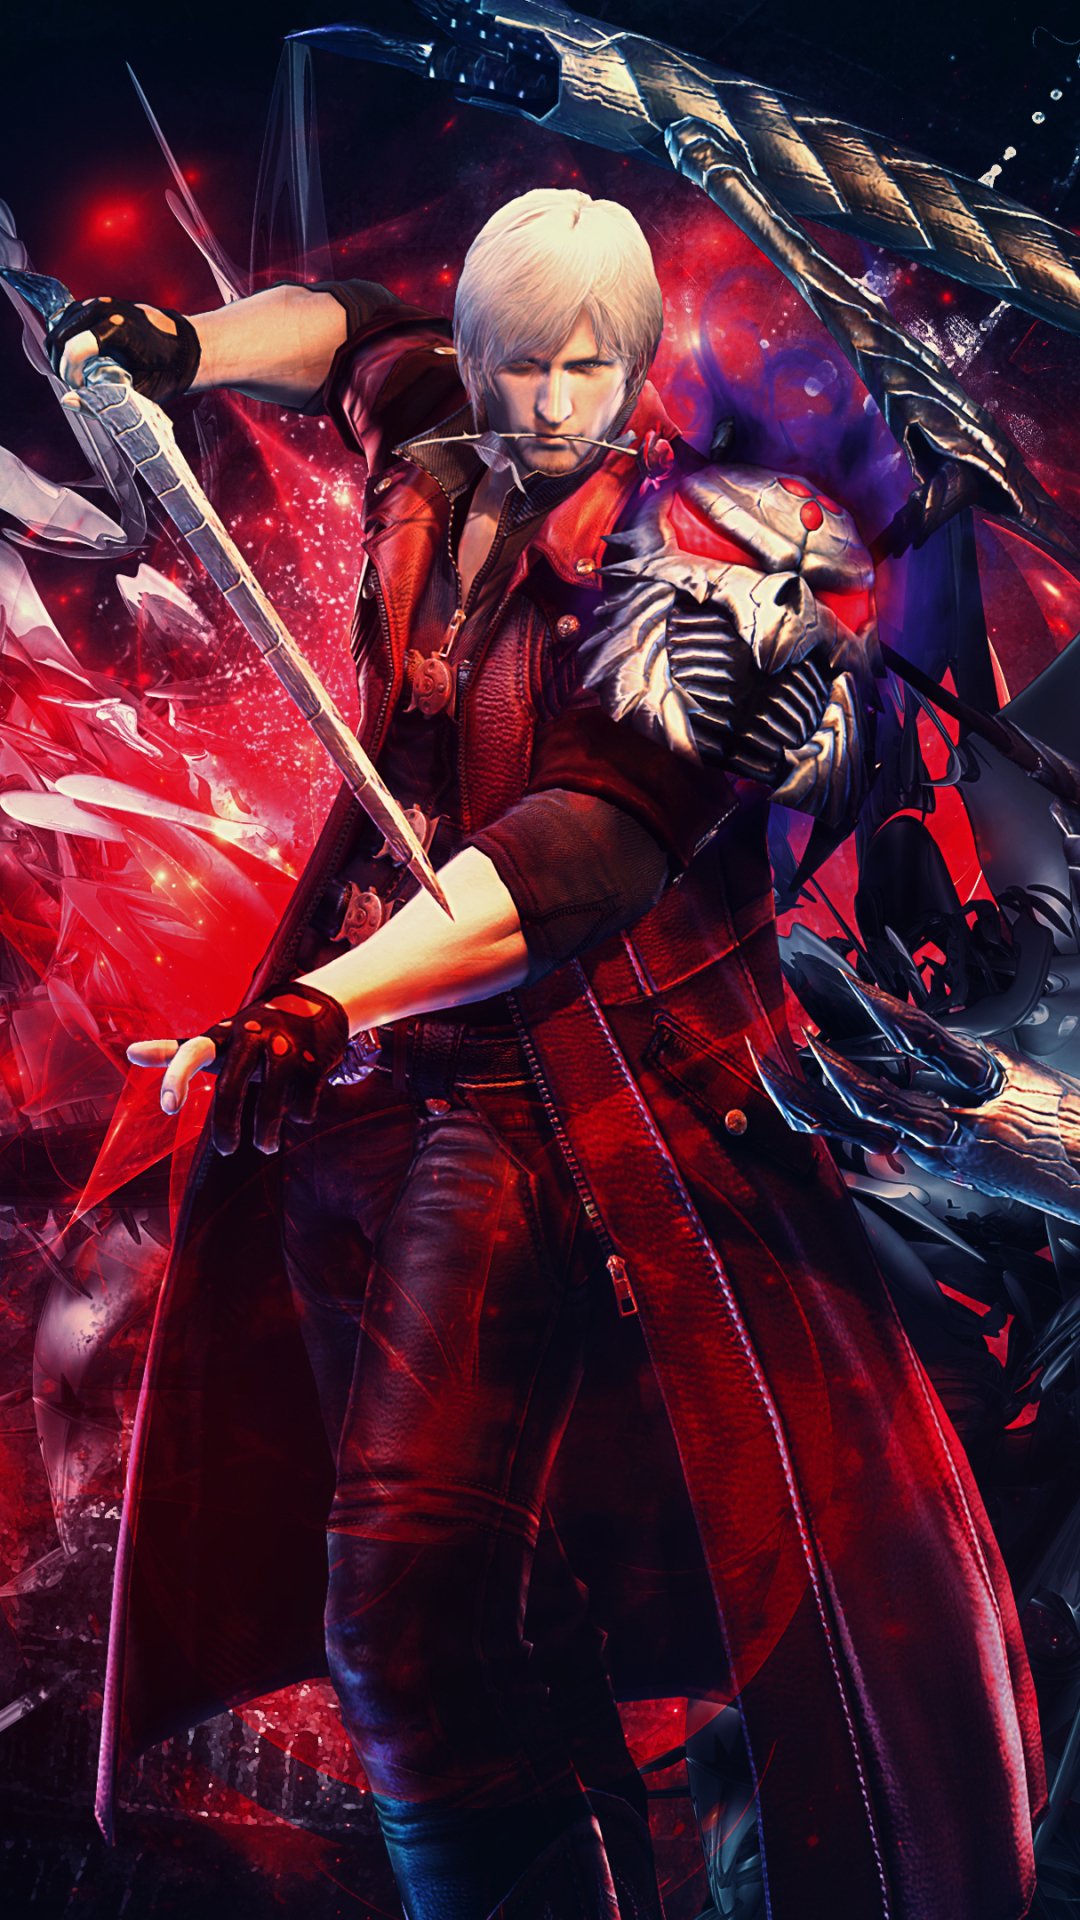 Video Game Devil May Cry 4 1080x1920 Wallpaper Id 741844